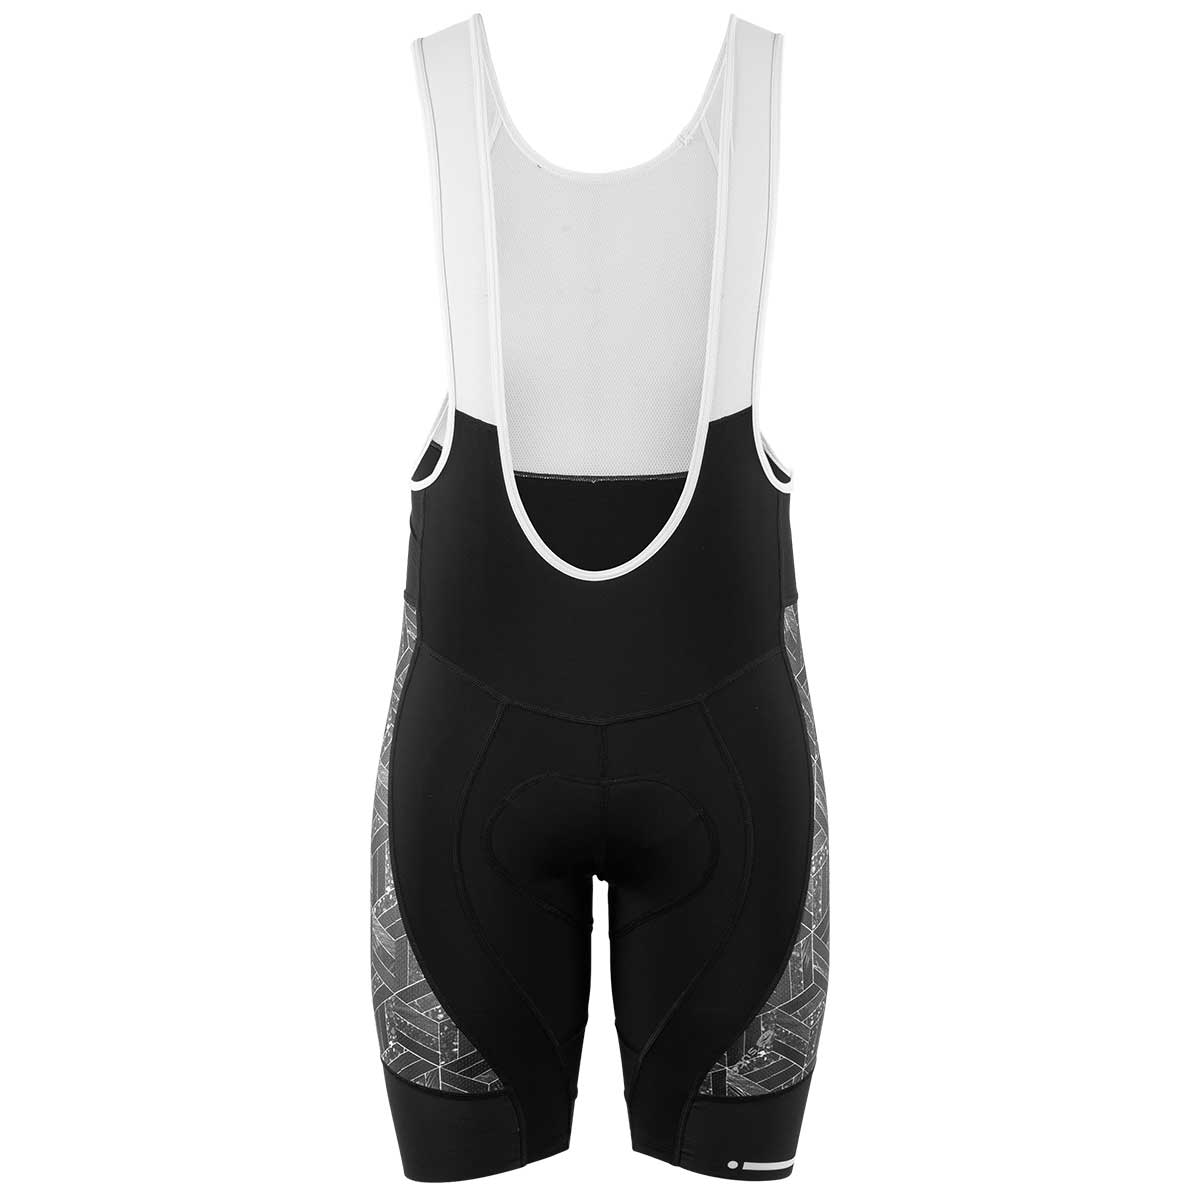 Sugoi men's RS Pro Bike Bib Short in Brix